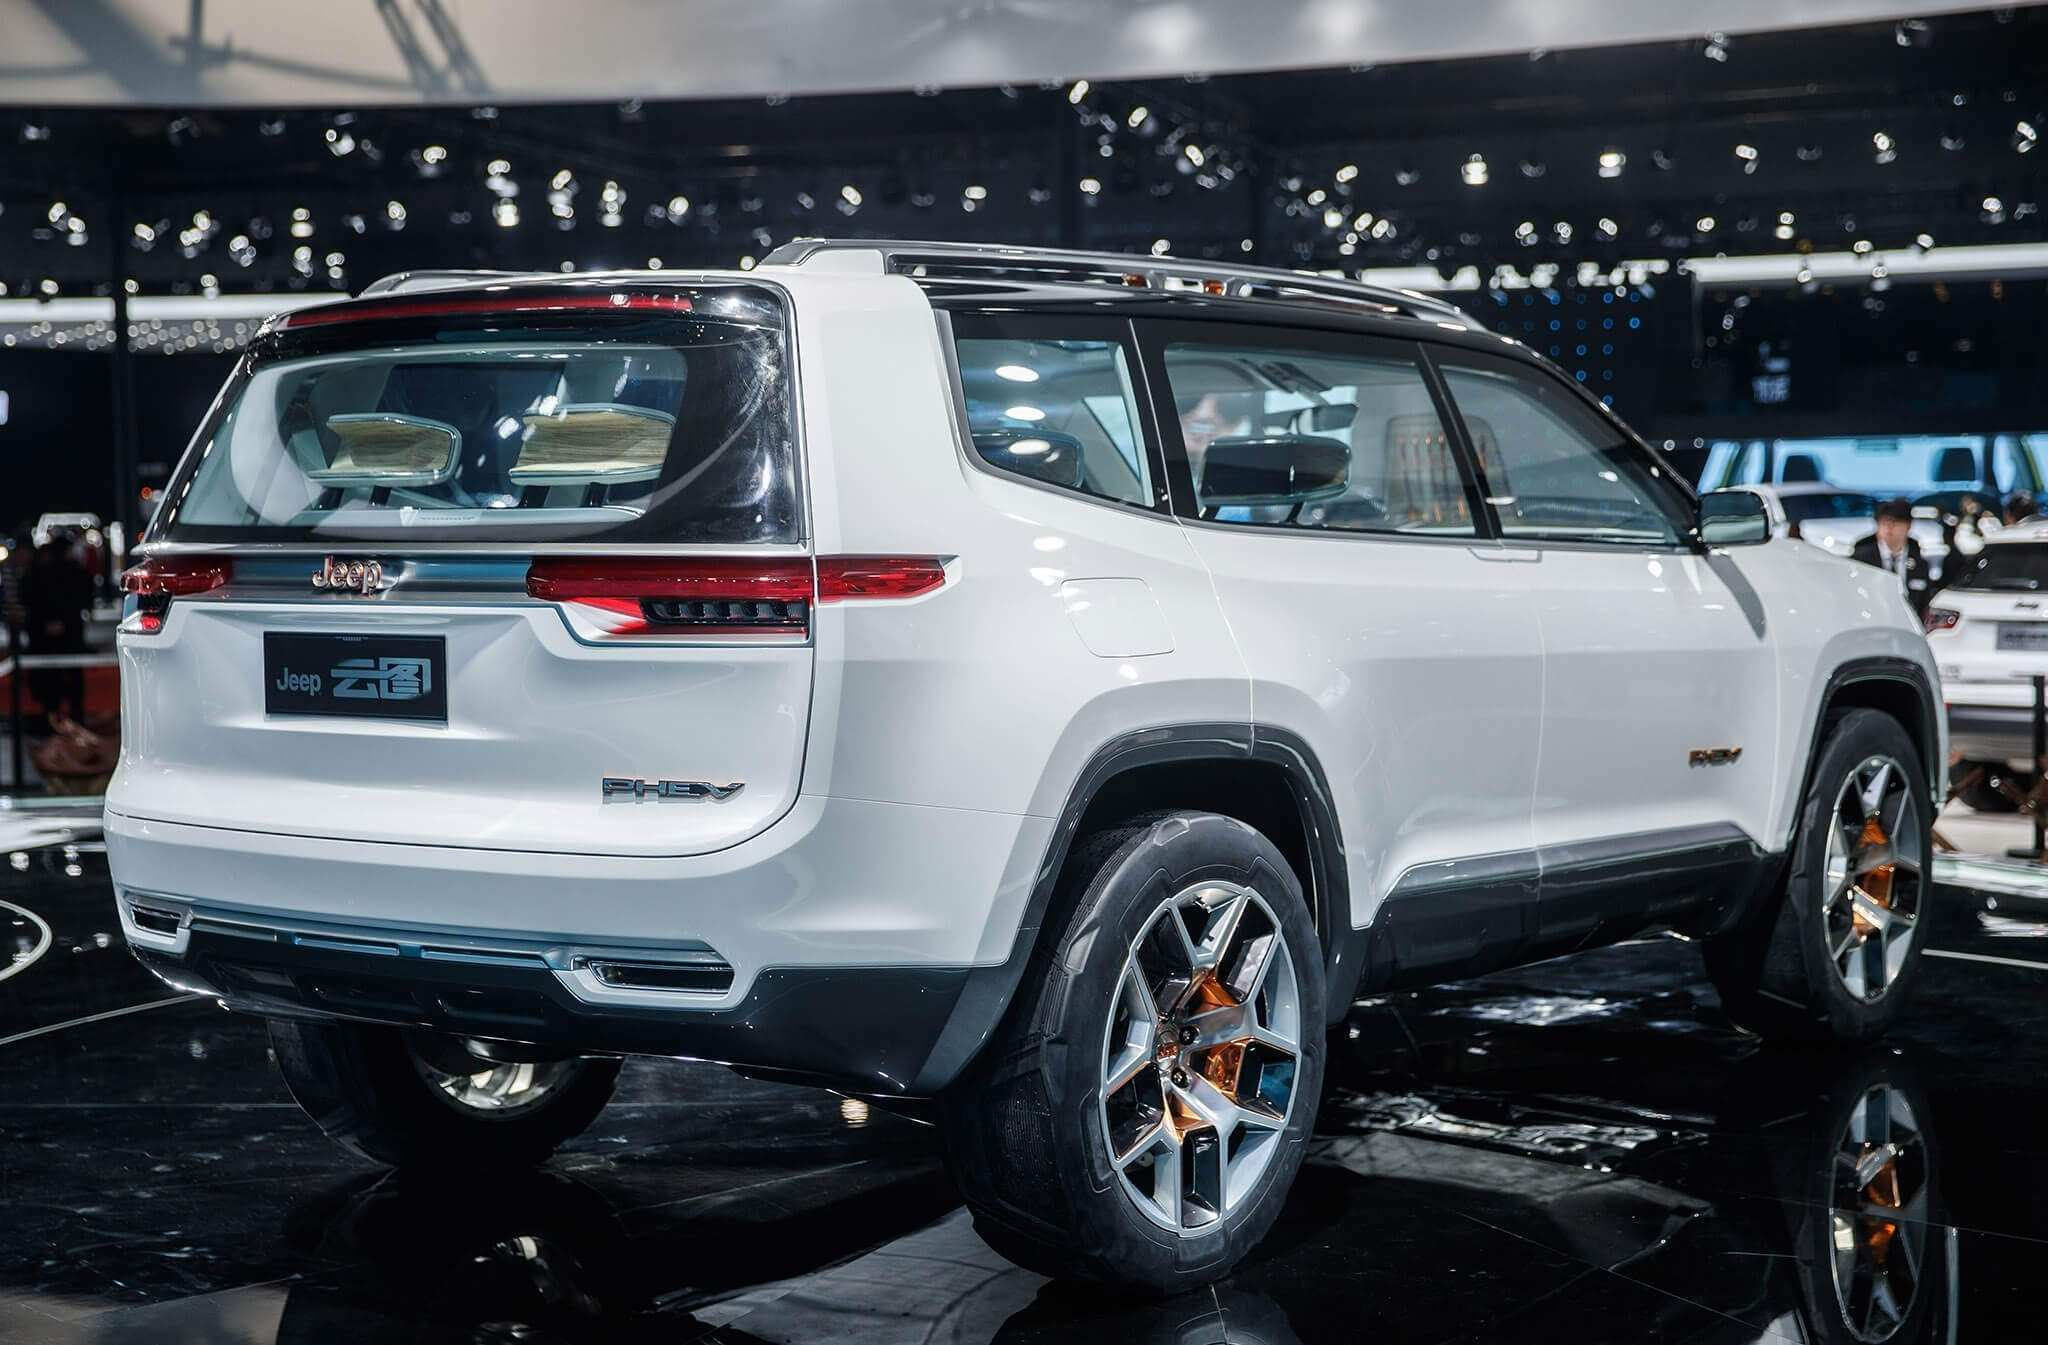 23 Gallery of 2020 Jeep Patriot Photos with 2020 Jeep Patriot